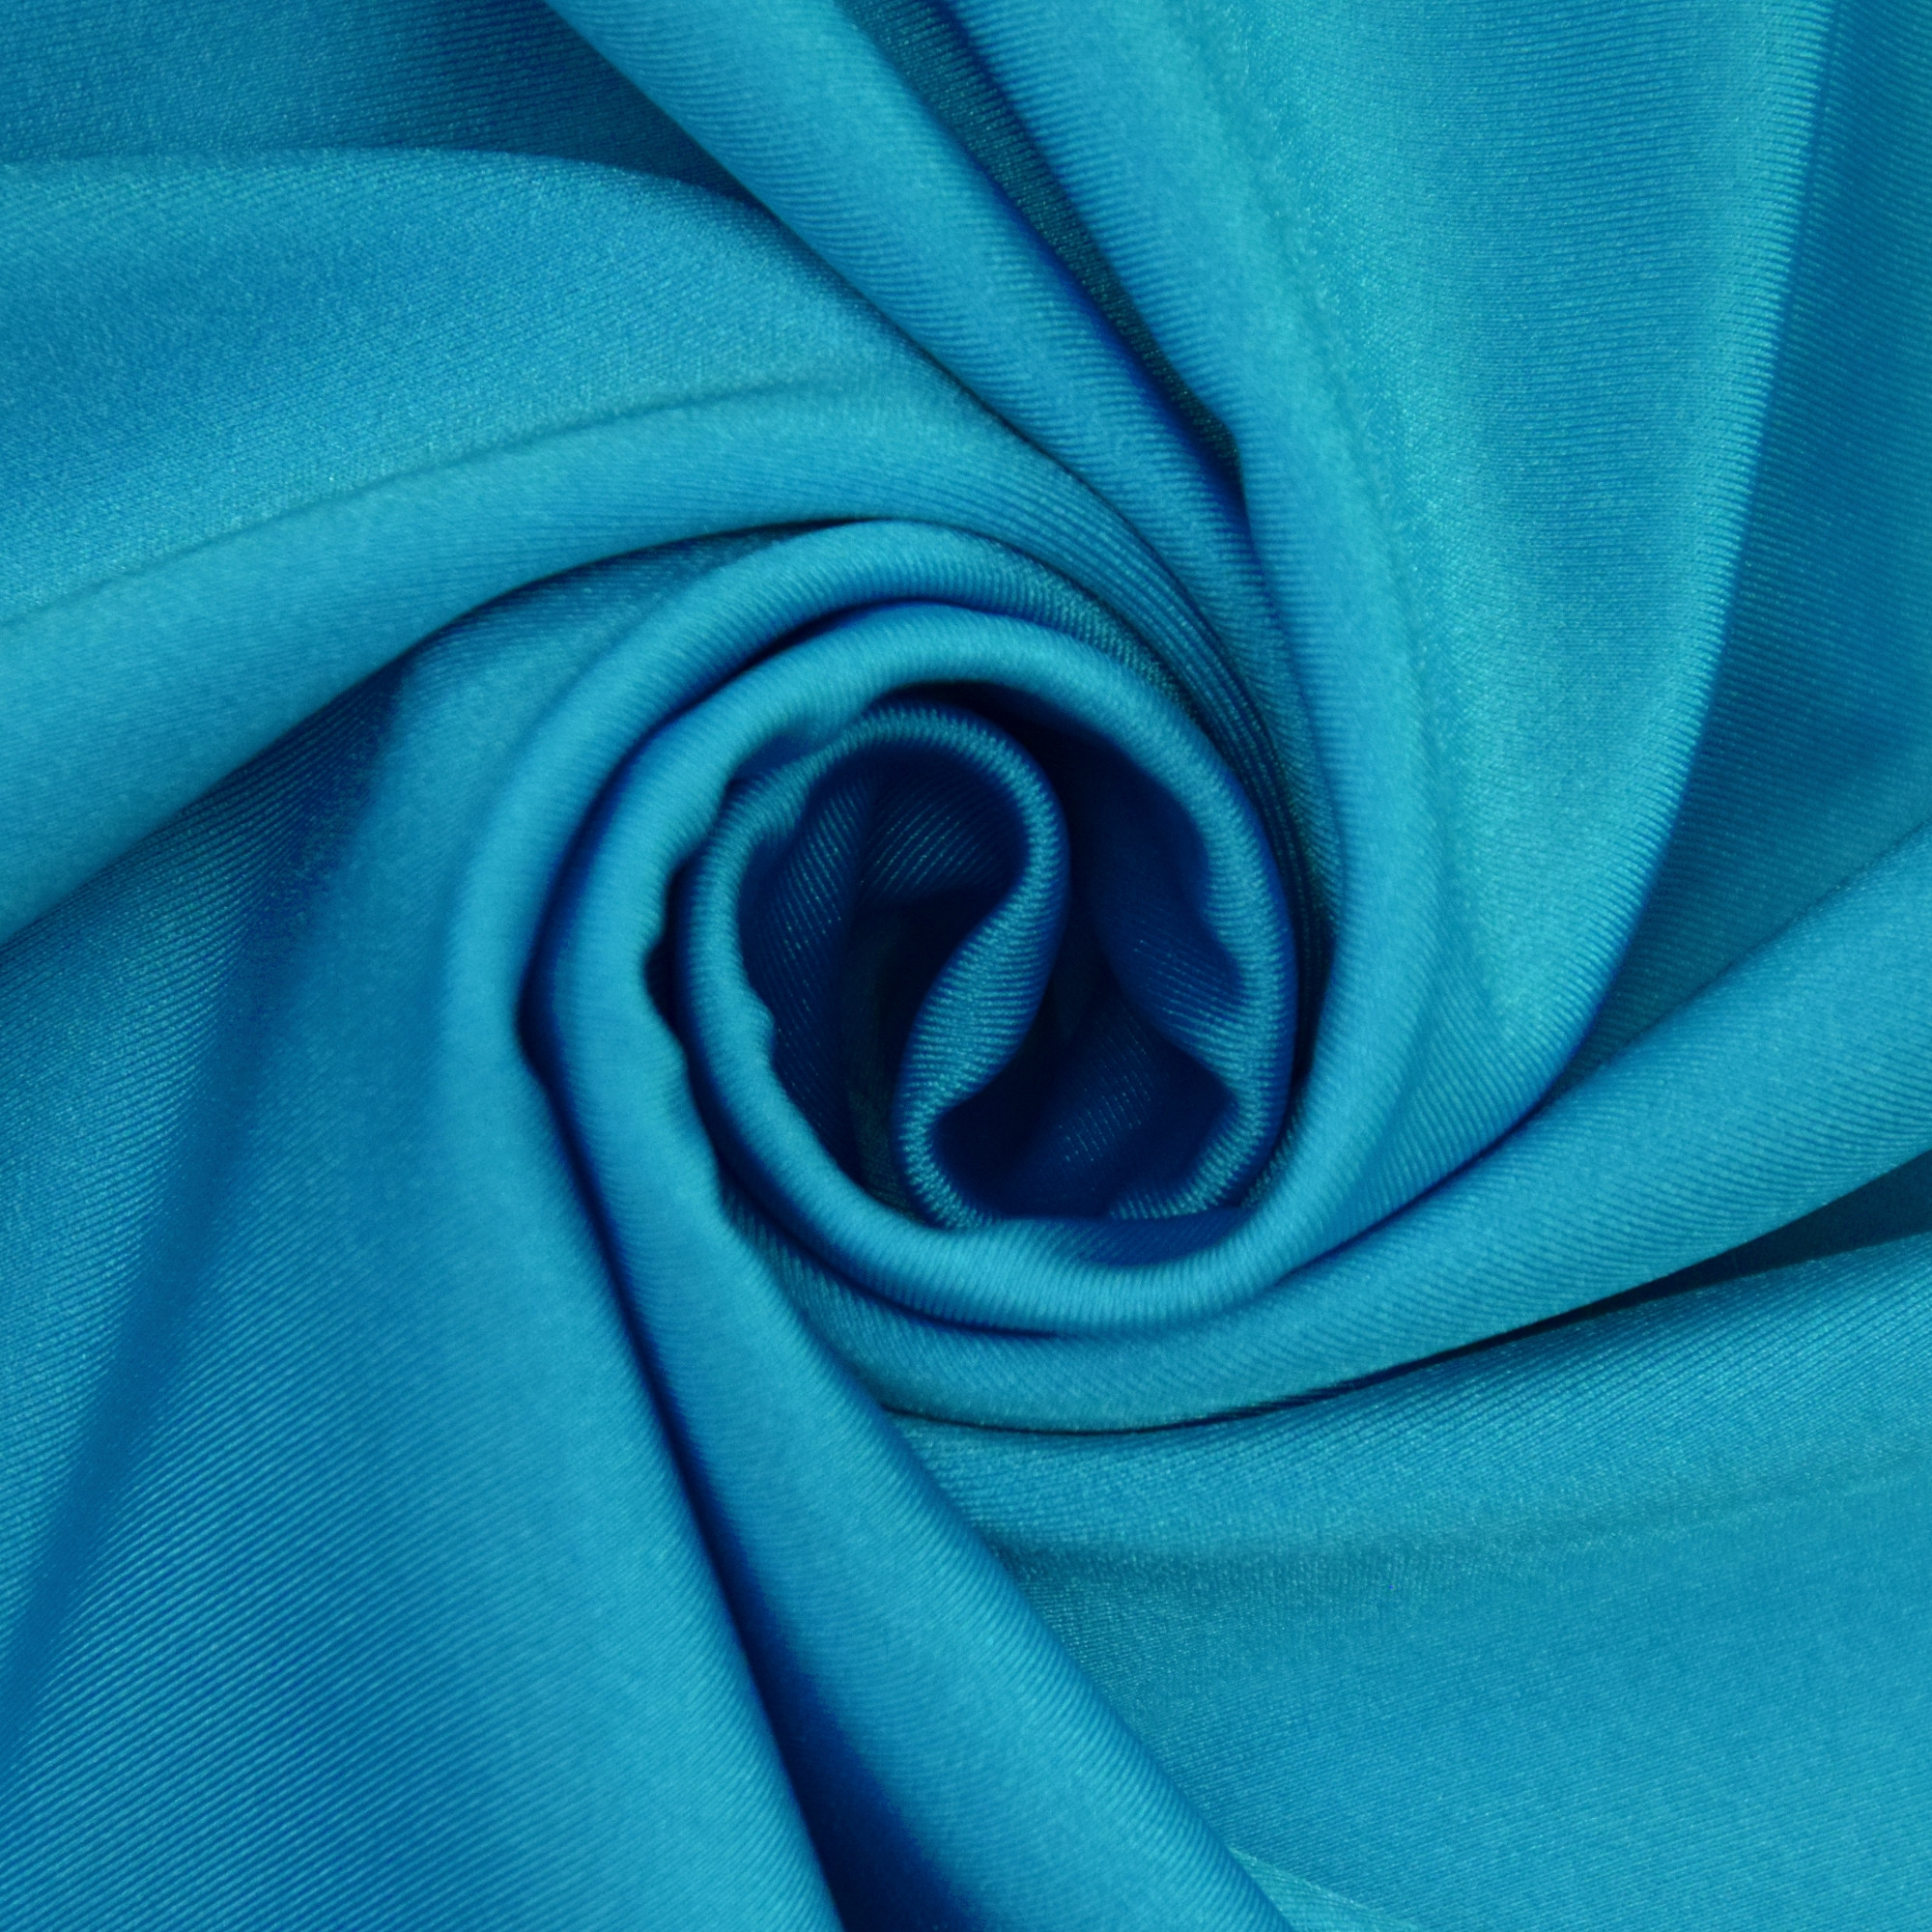 Swimsuit fabric turquoise blue | 110.473-5030 | türkis